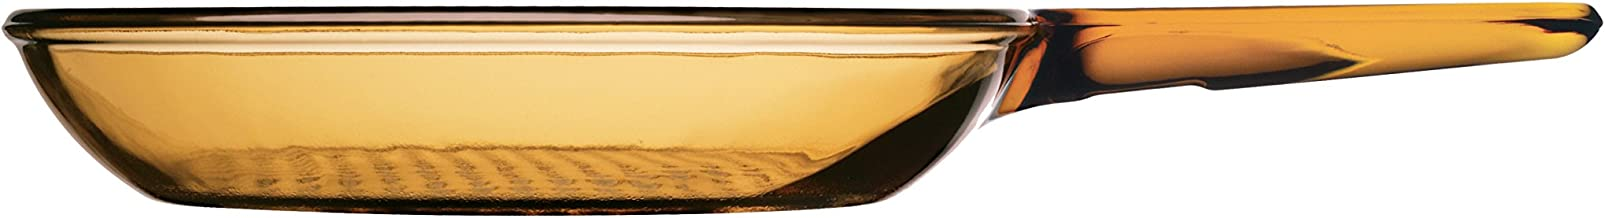 """Pyrex Corning Visions Cookware Amber 7"""" Skillet"""